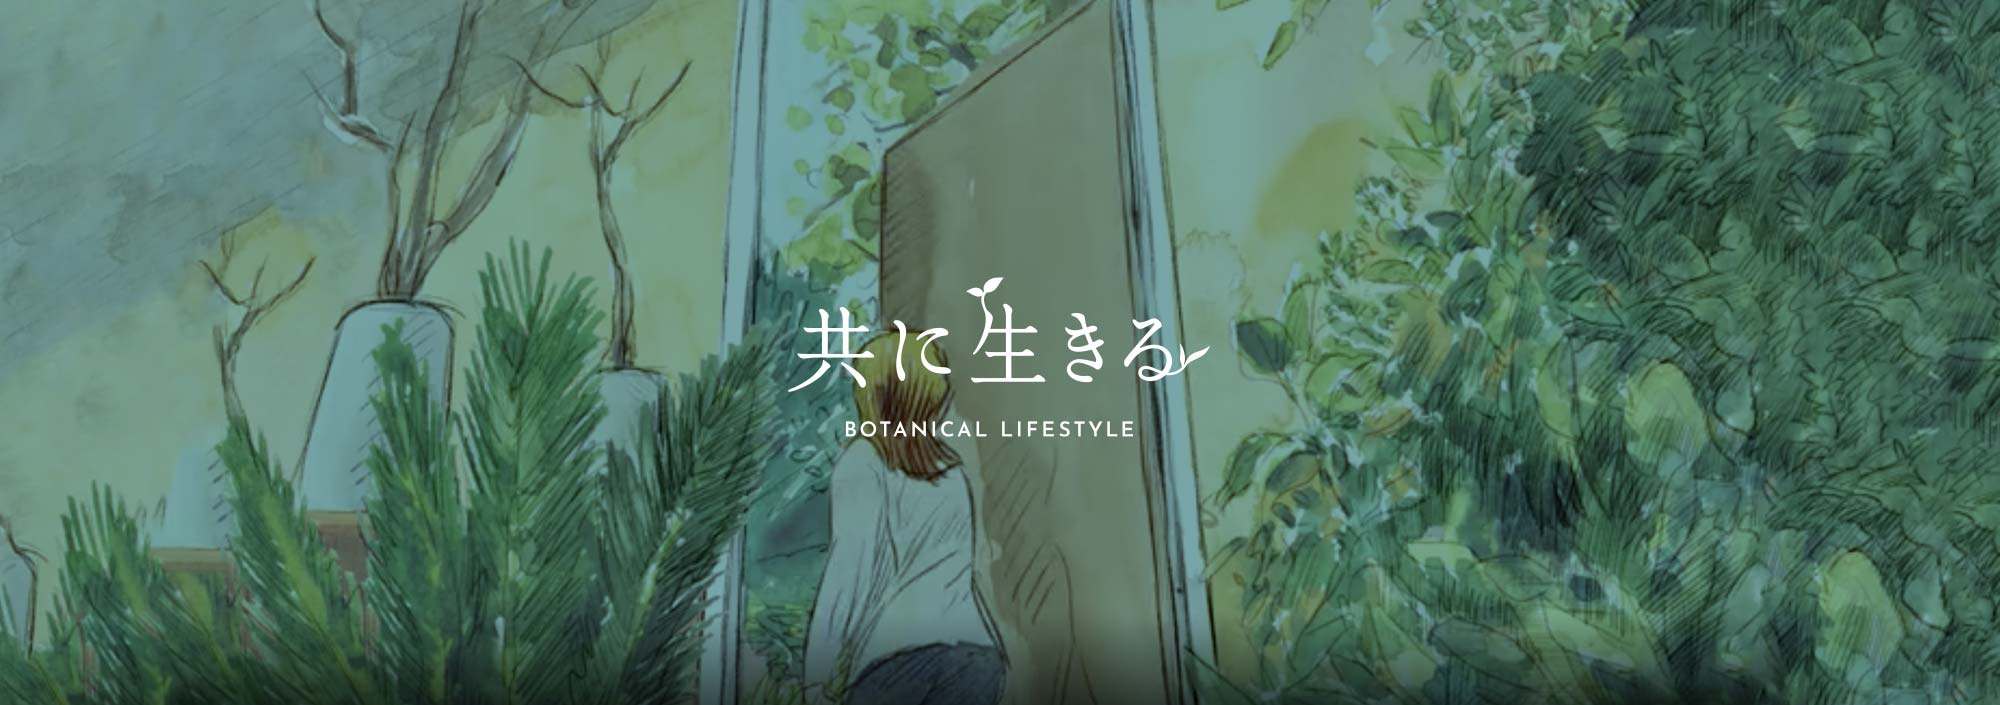 共に生きる BOTANICAL LIFESTYLE